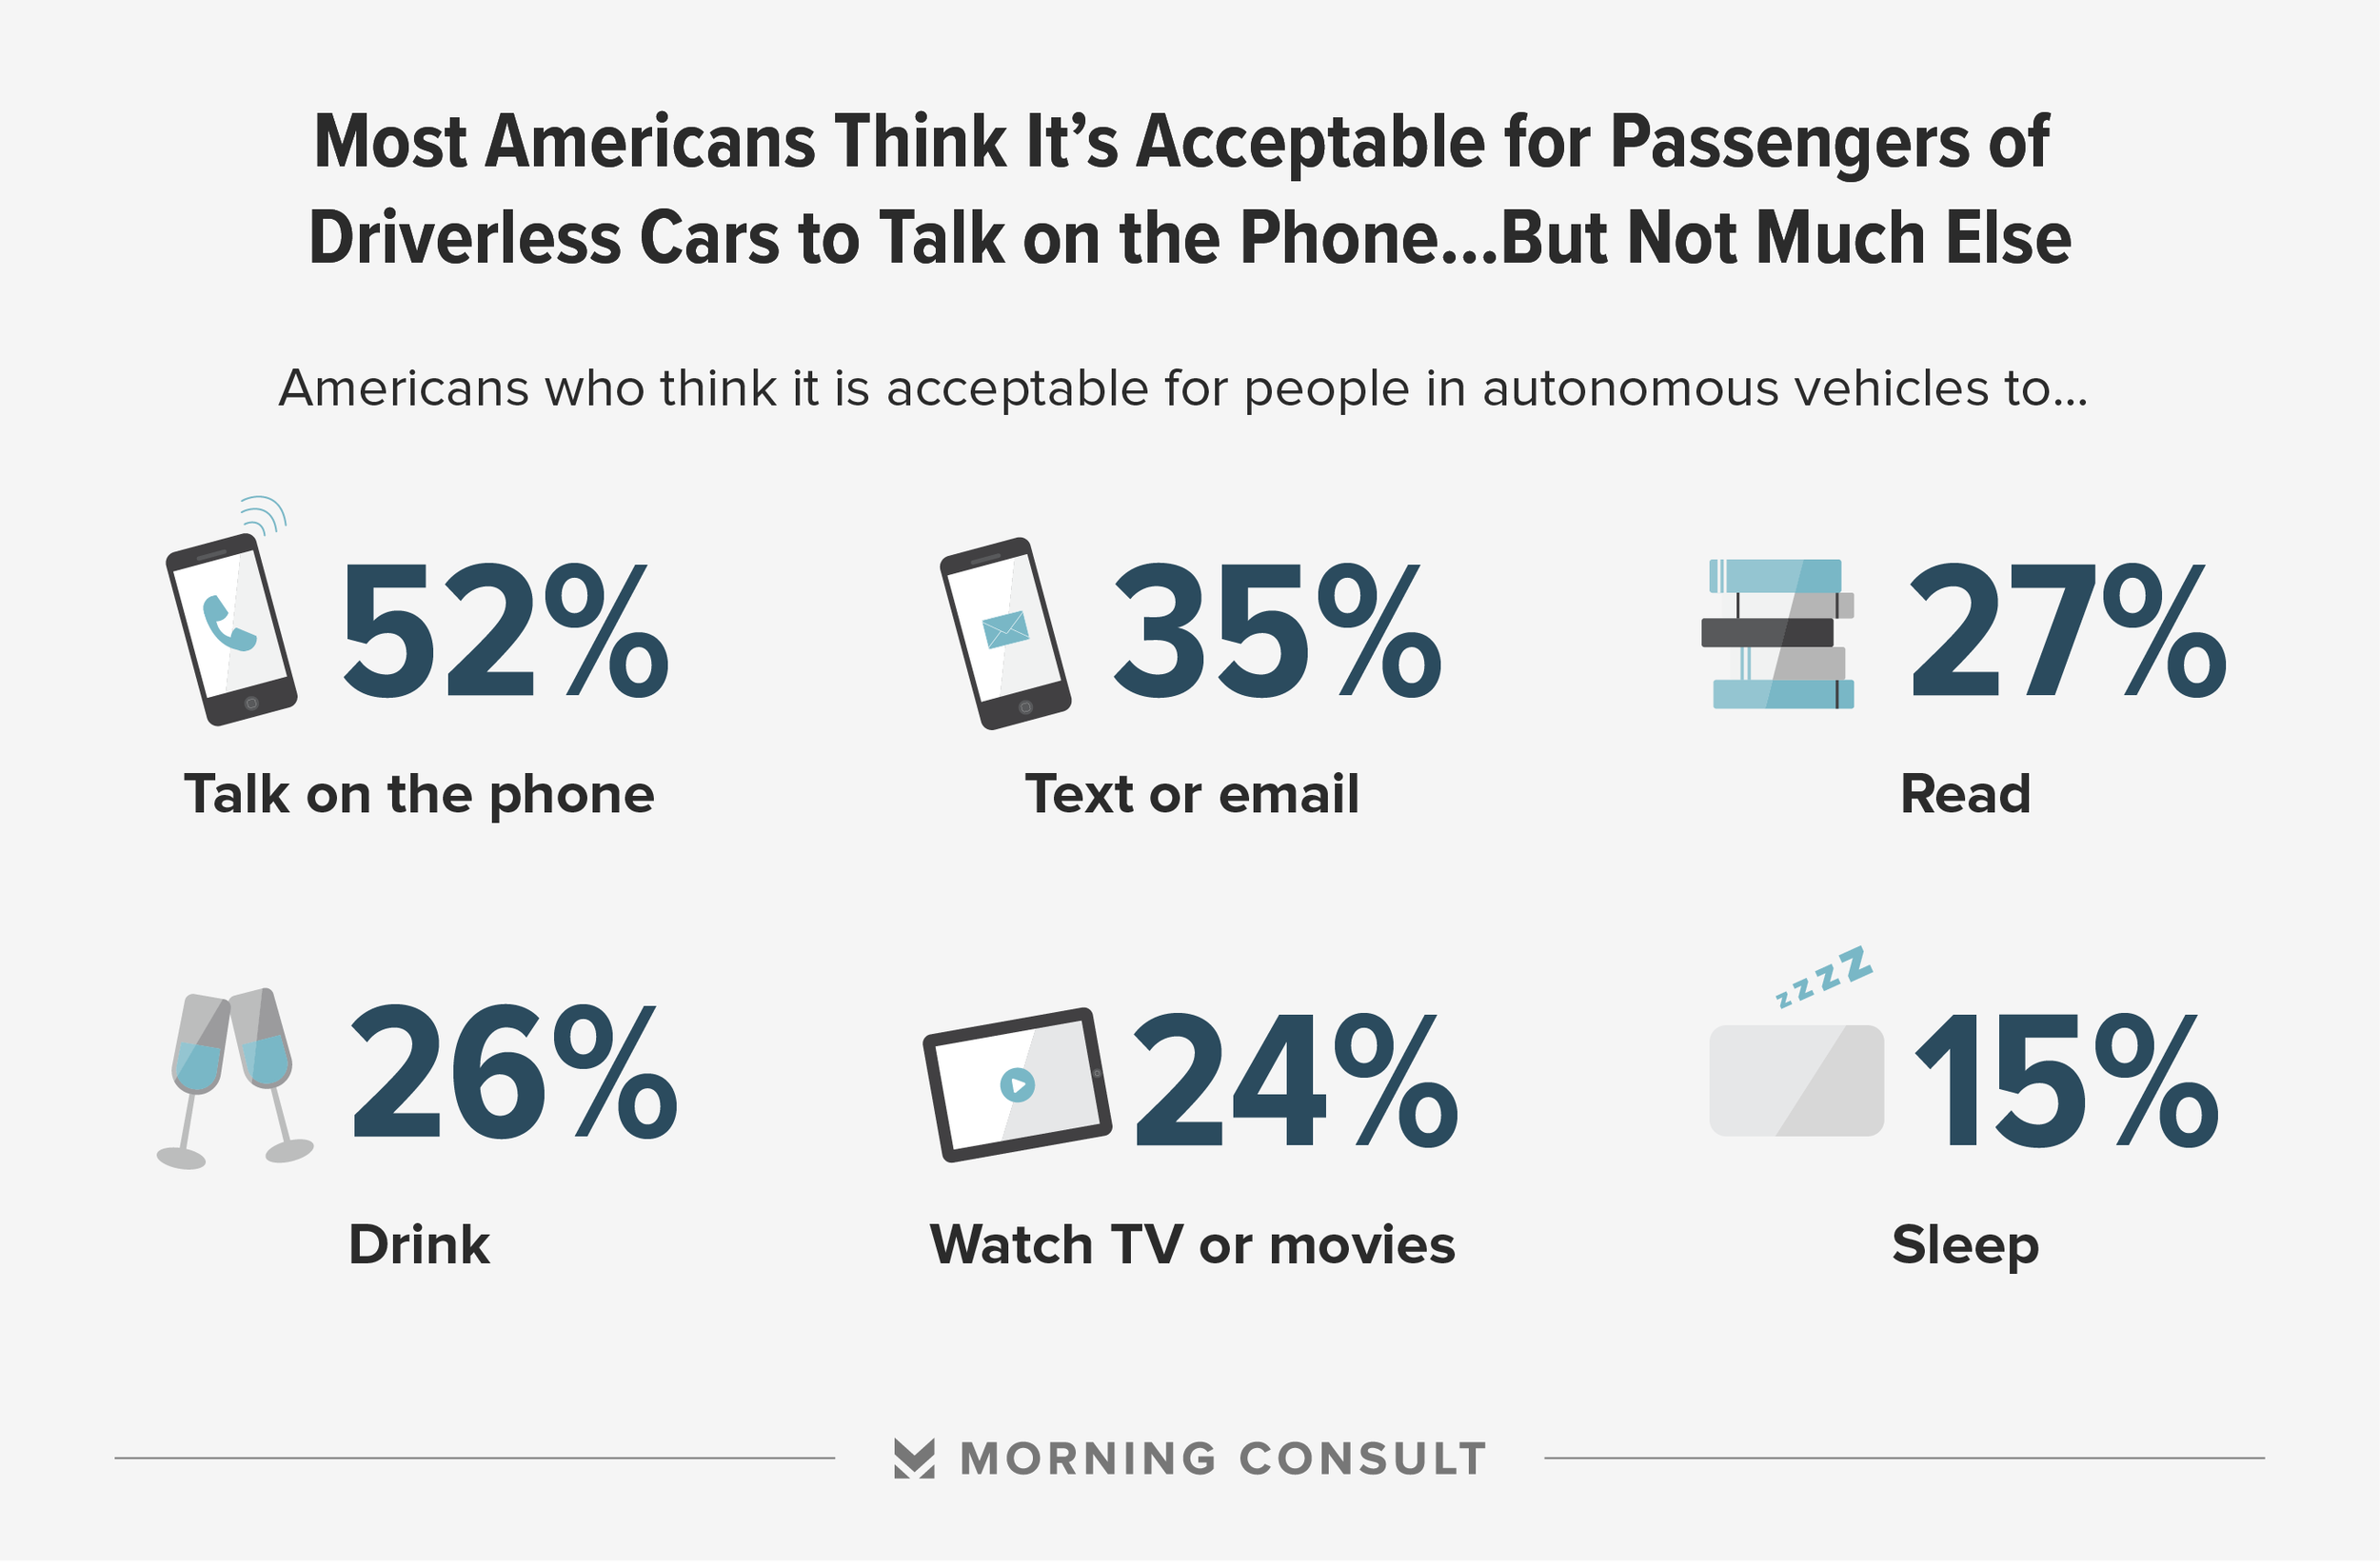 Results from morning consult's survey showing what americans think passengers should and shouldn't do in driverless cars